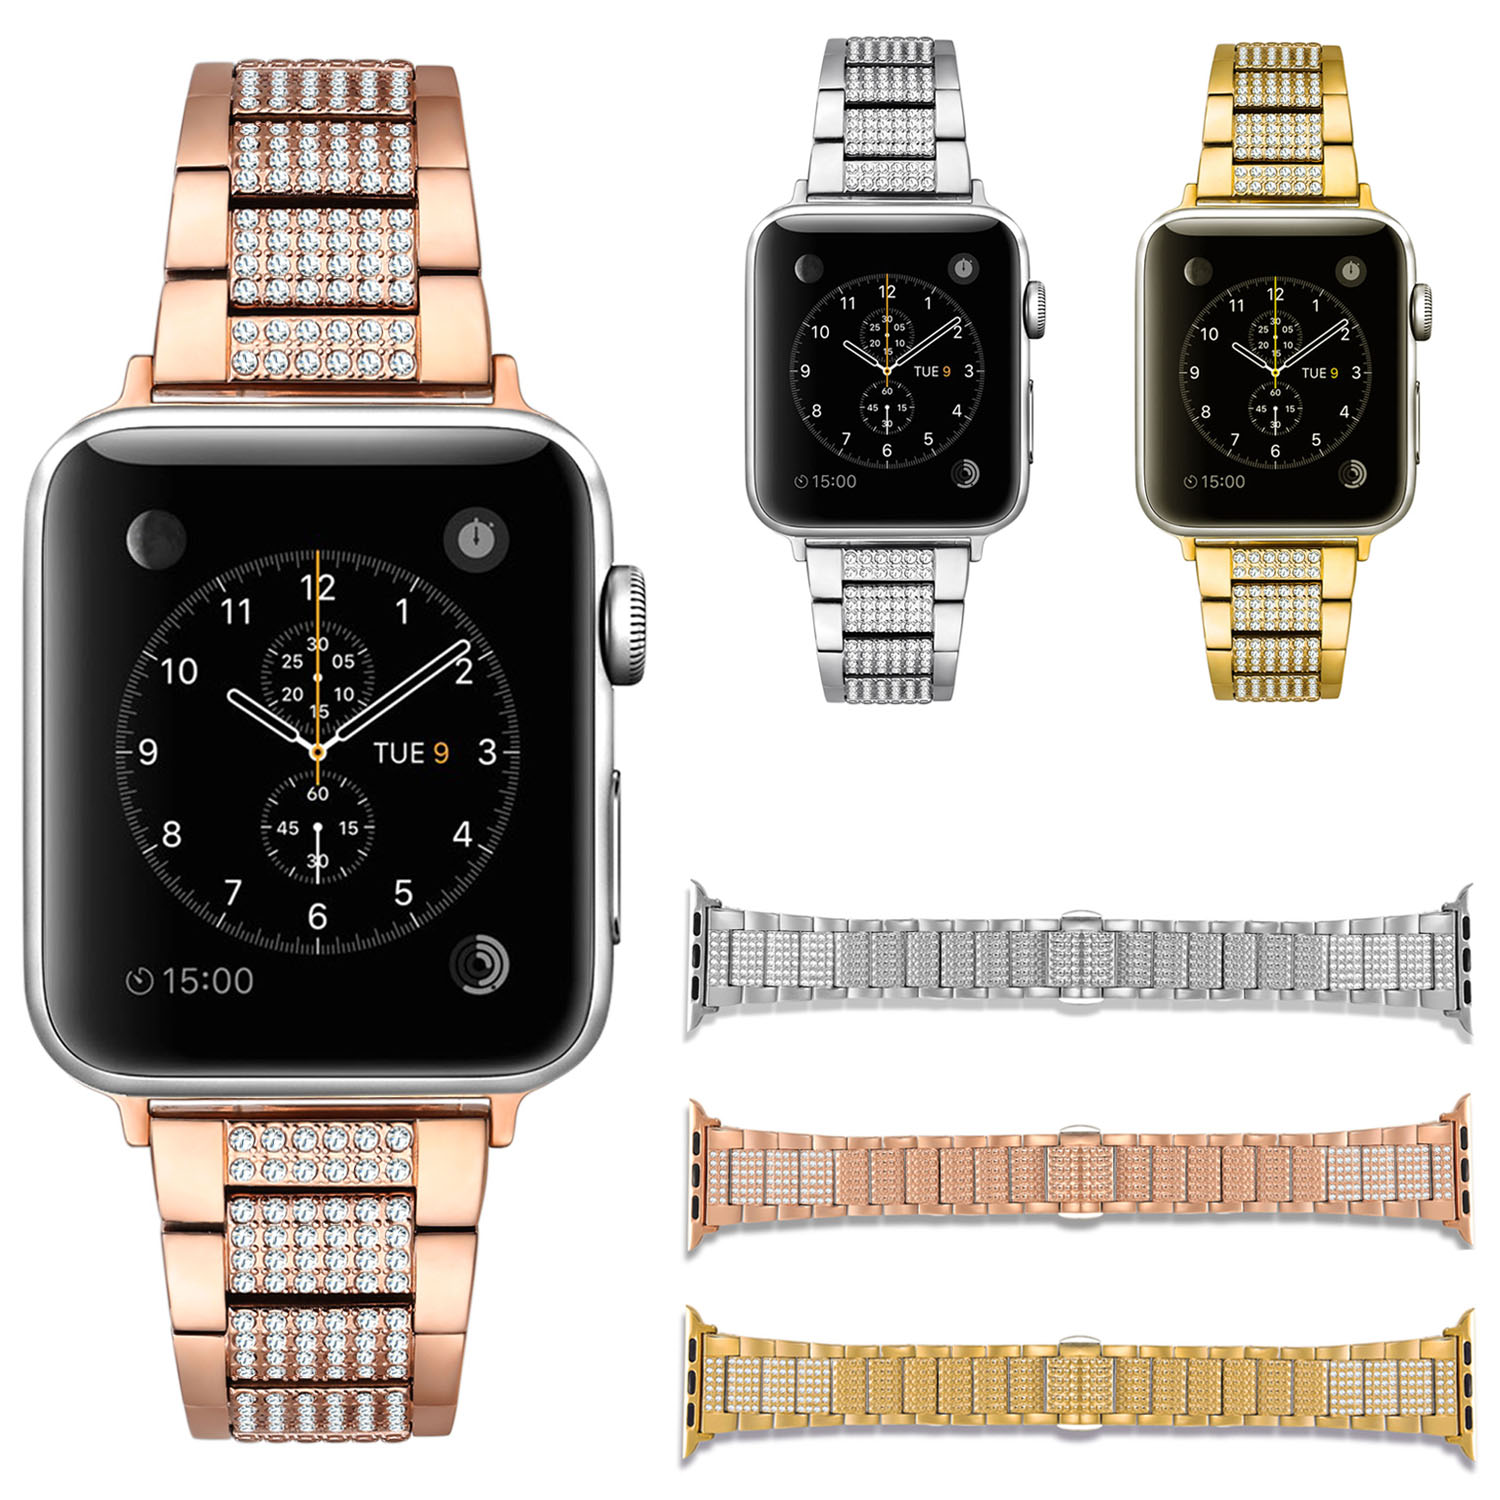 Bling Rhinestone Bracelet for Apple Watch Series 3 Band Diamond Stainless Steel Strap for iWatch Series 1/2 Watchbands 38mm 42mm<br>